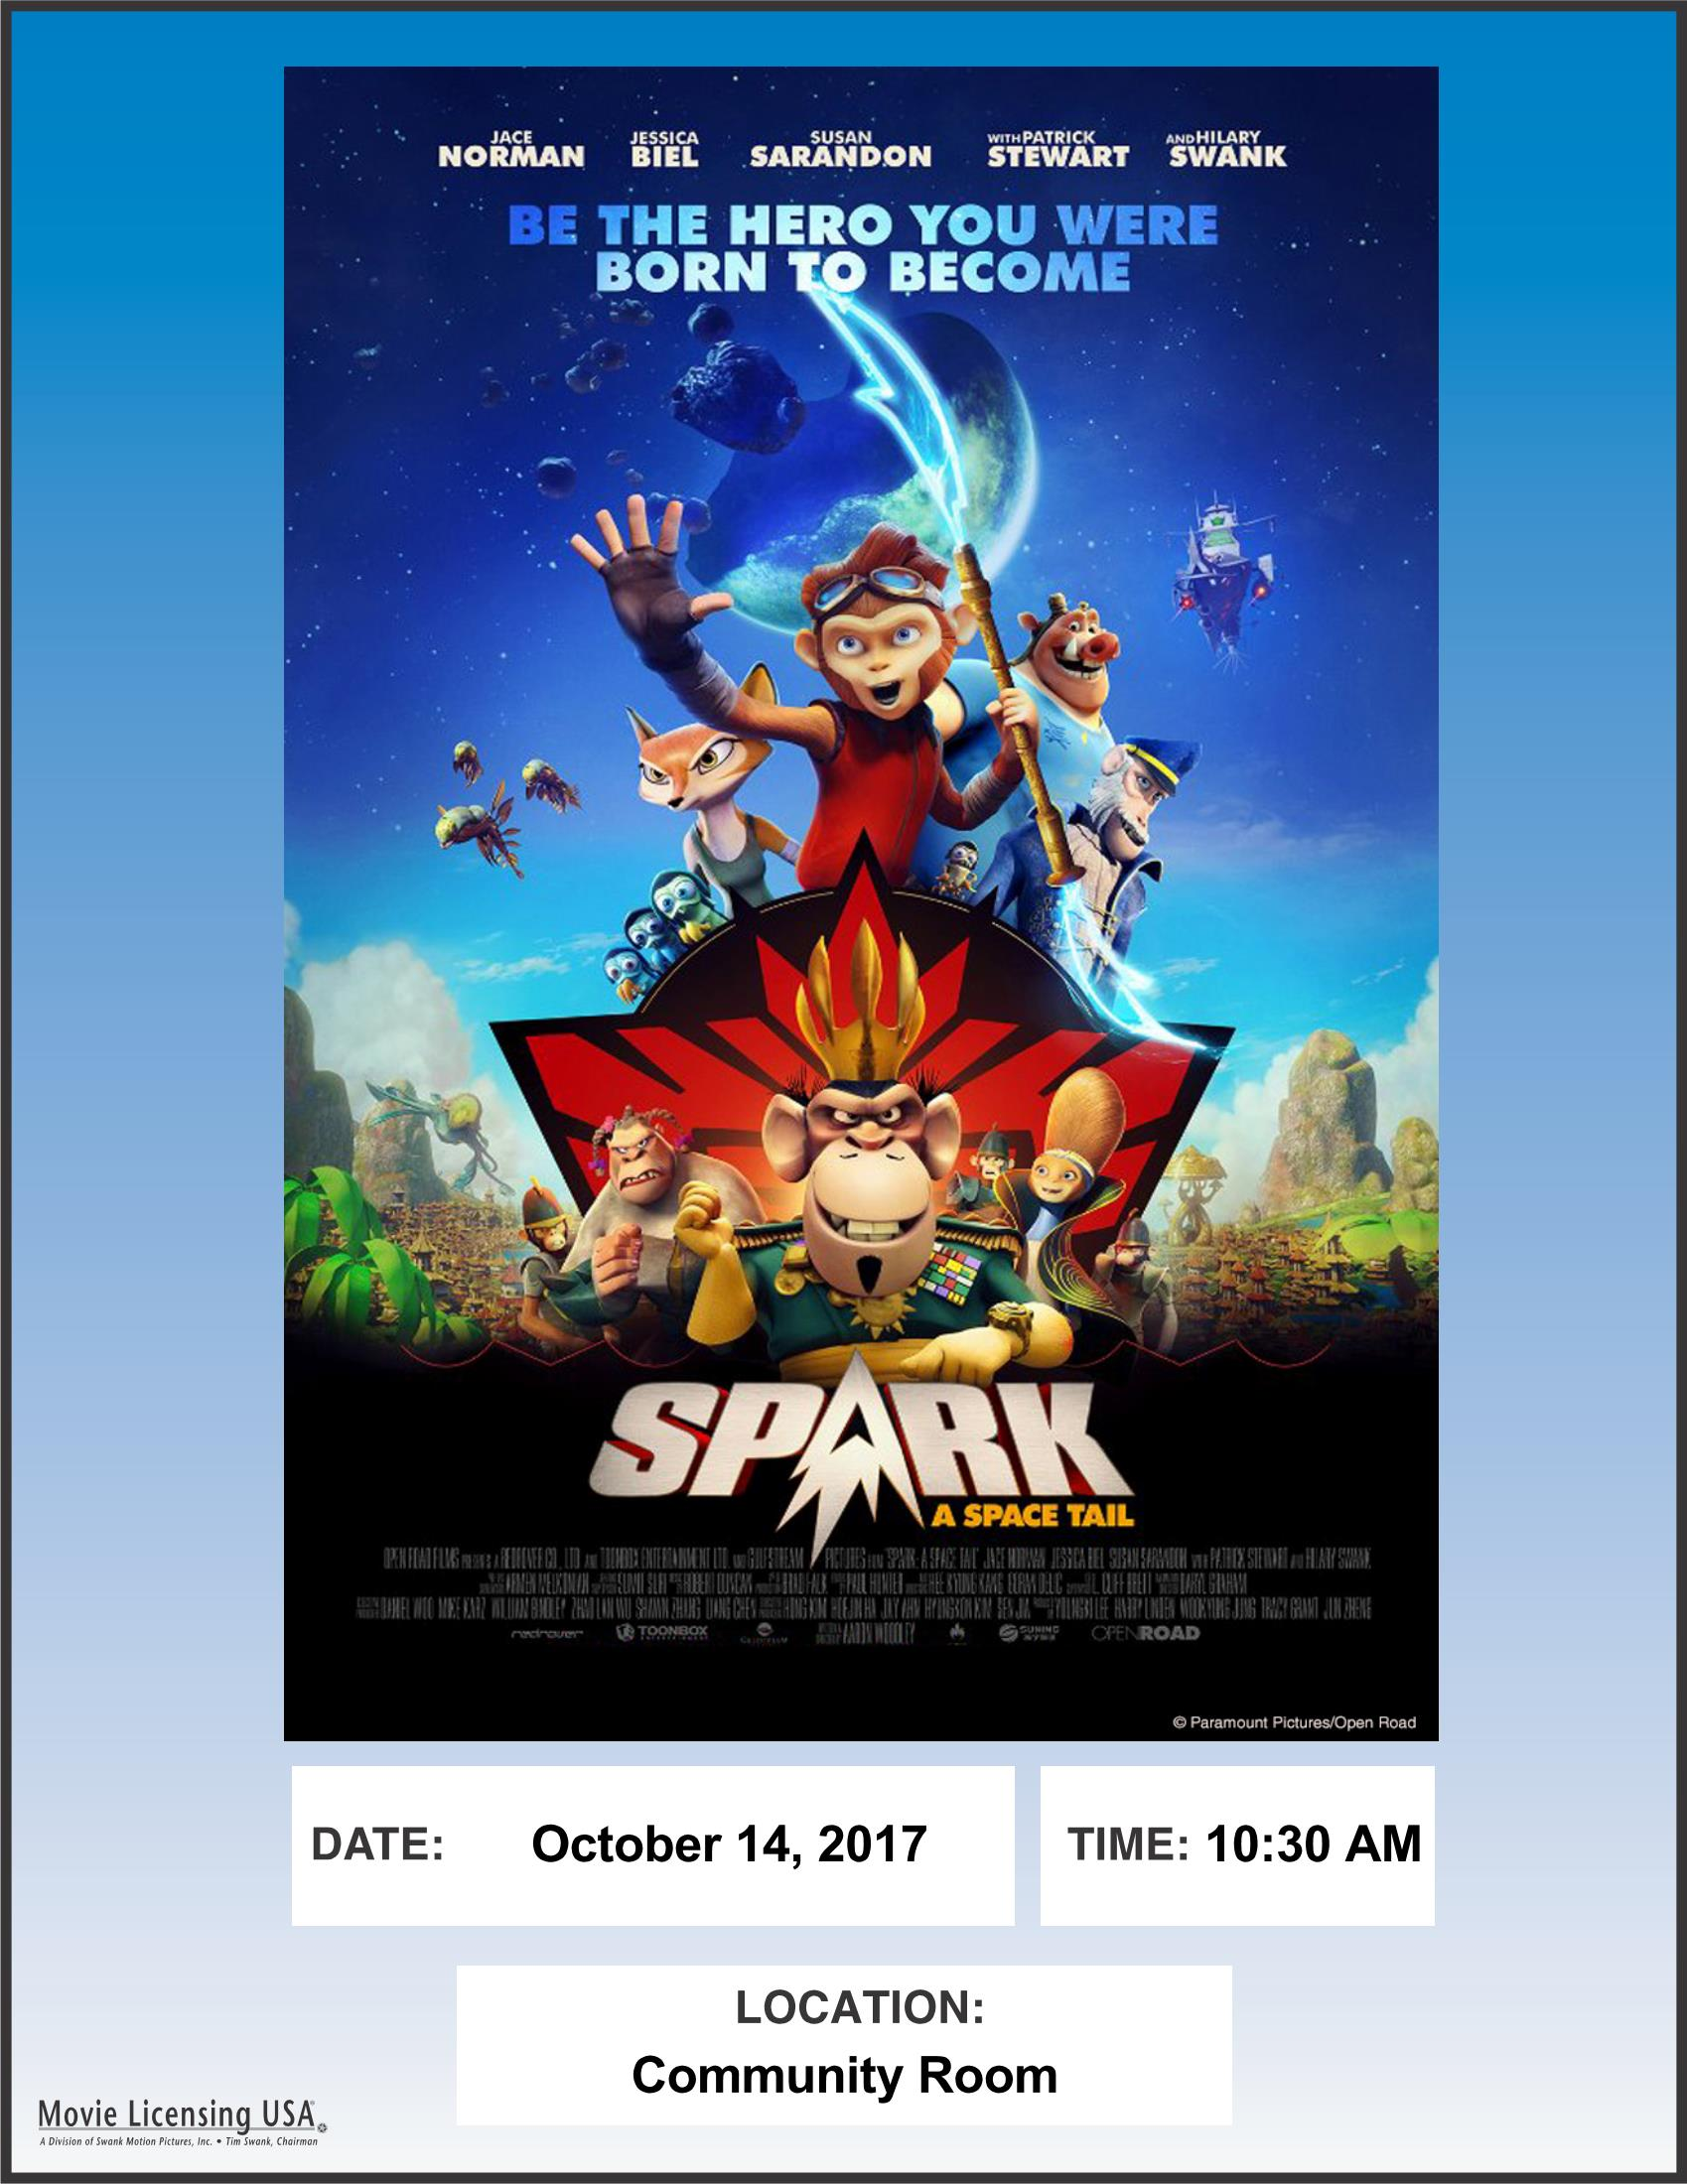 SPARK_A_SPACE_TAIL_poster_Page_1.jpeg